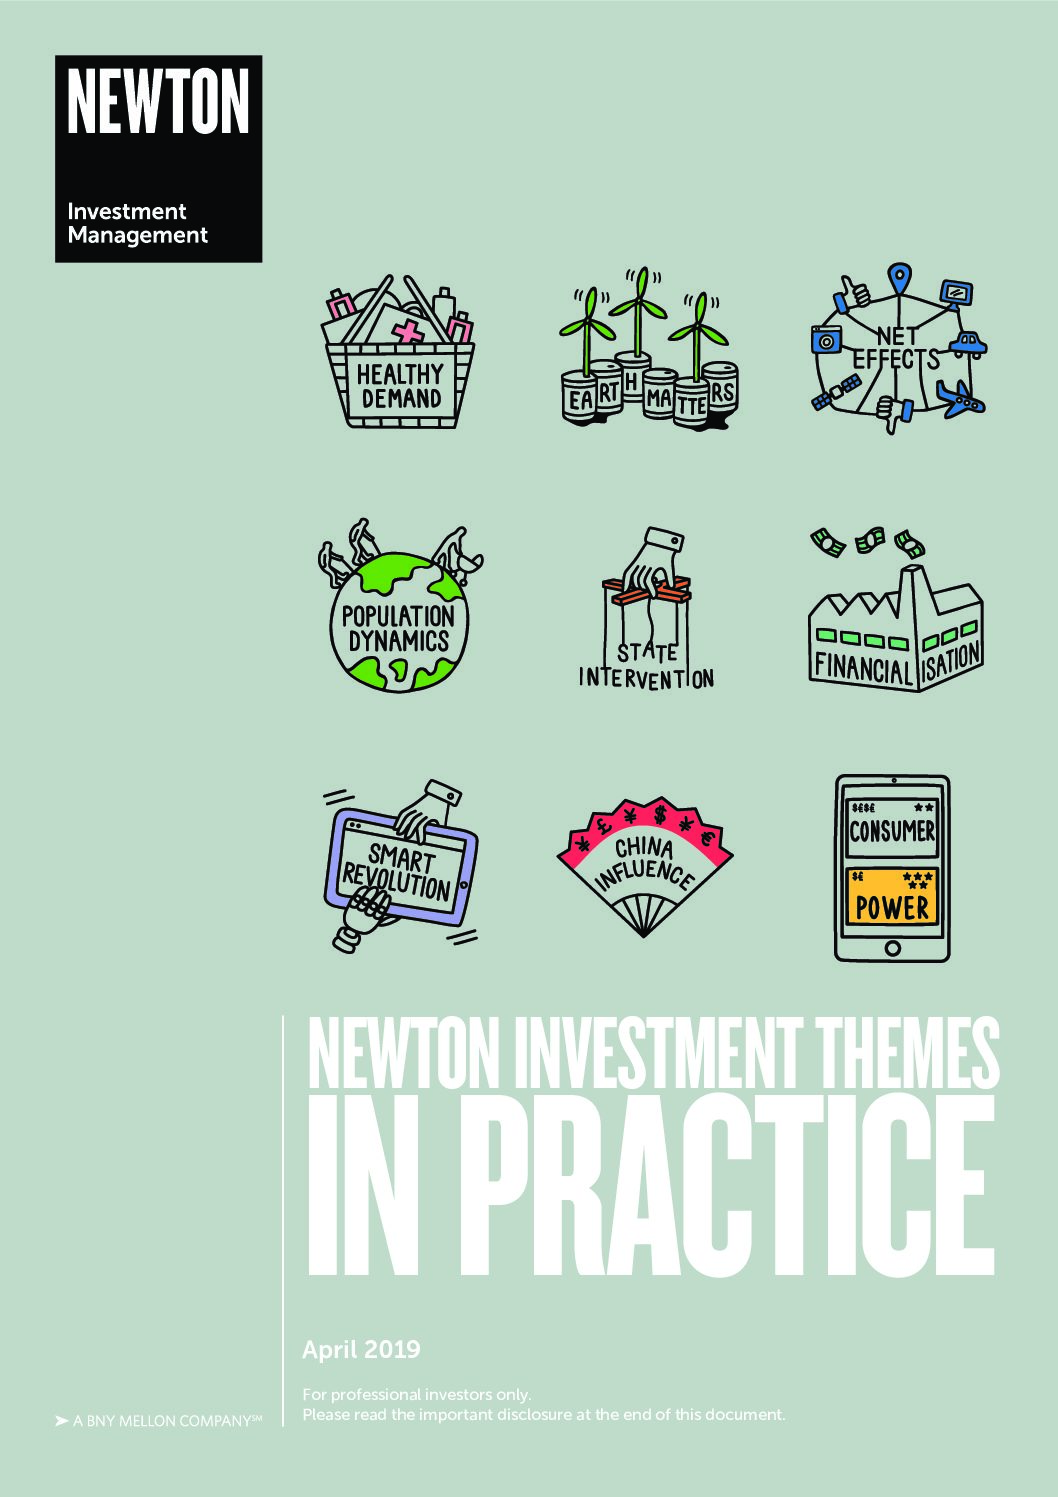 uk-investment-themes-in-practice-apr-2019